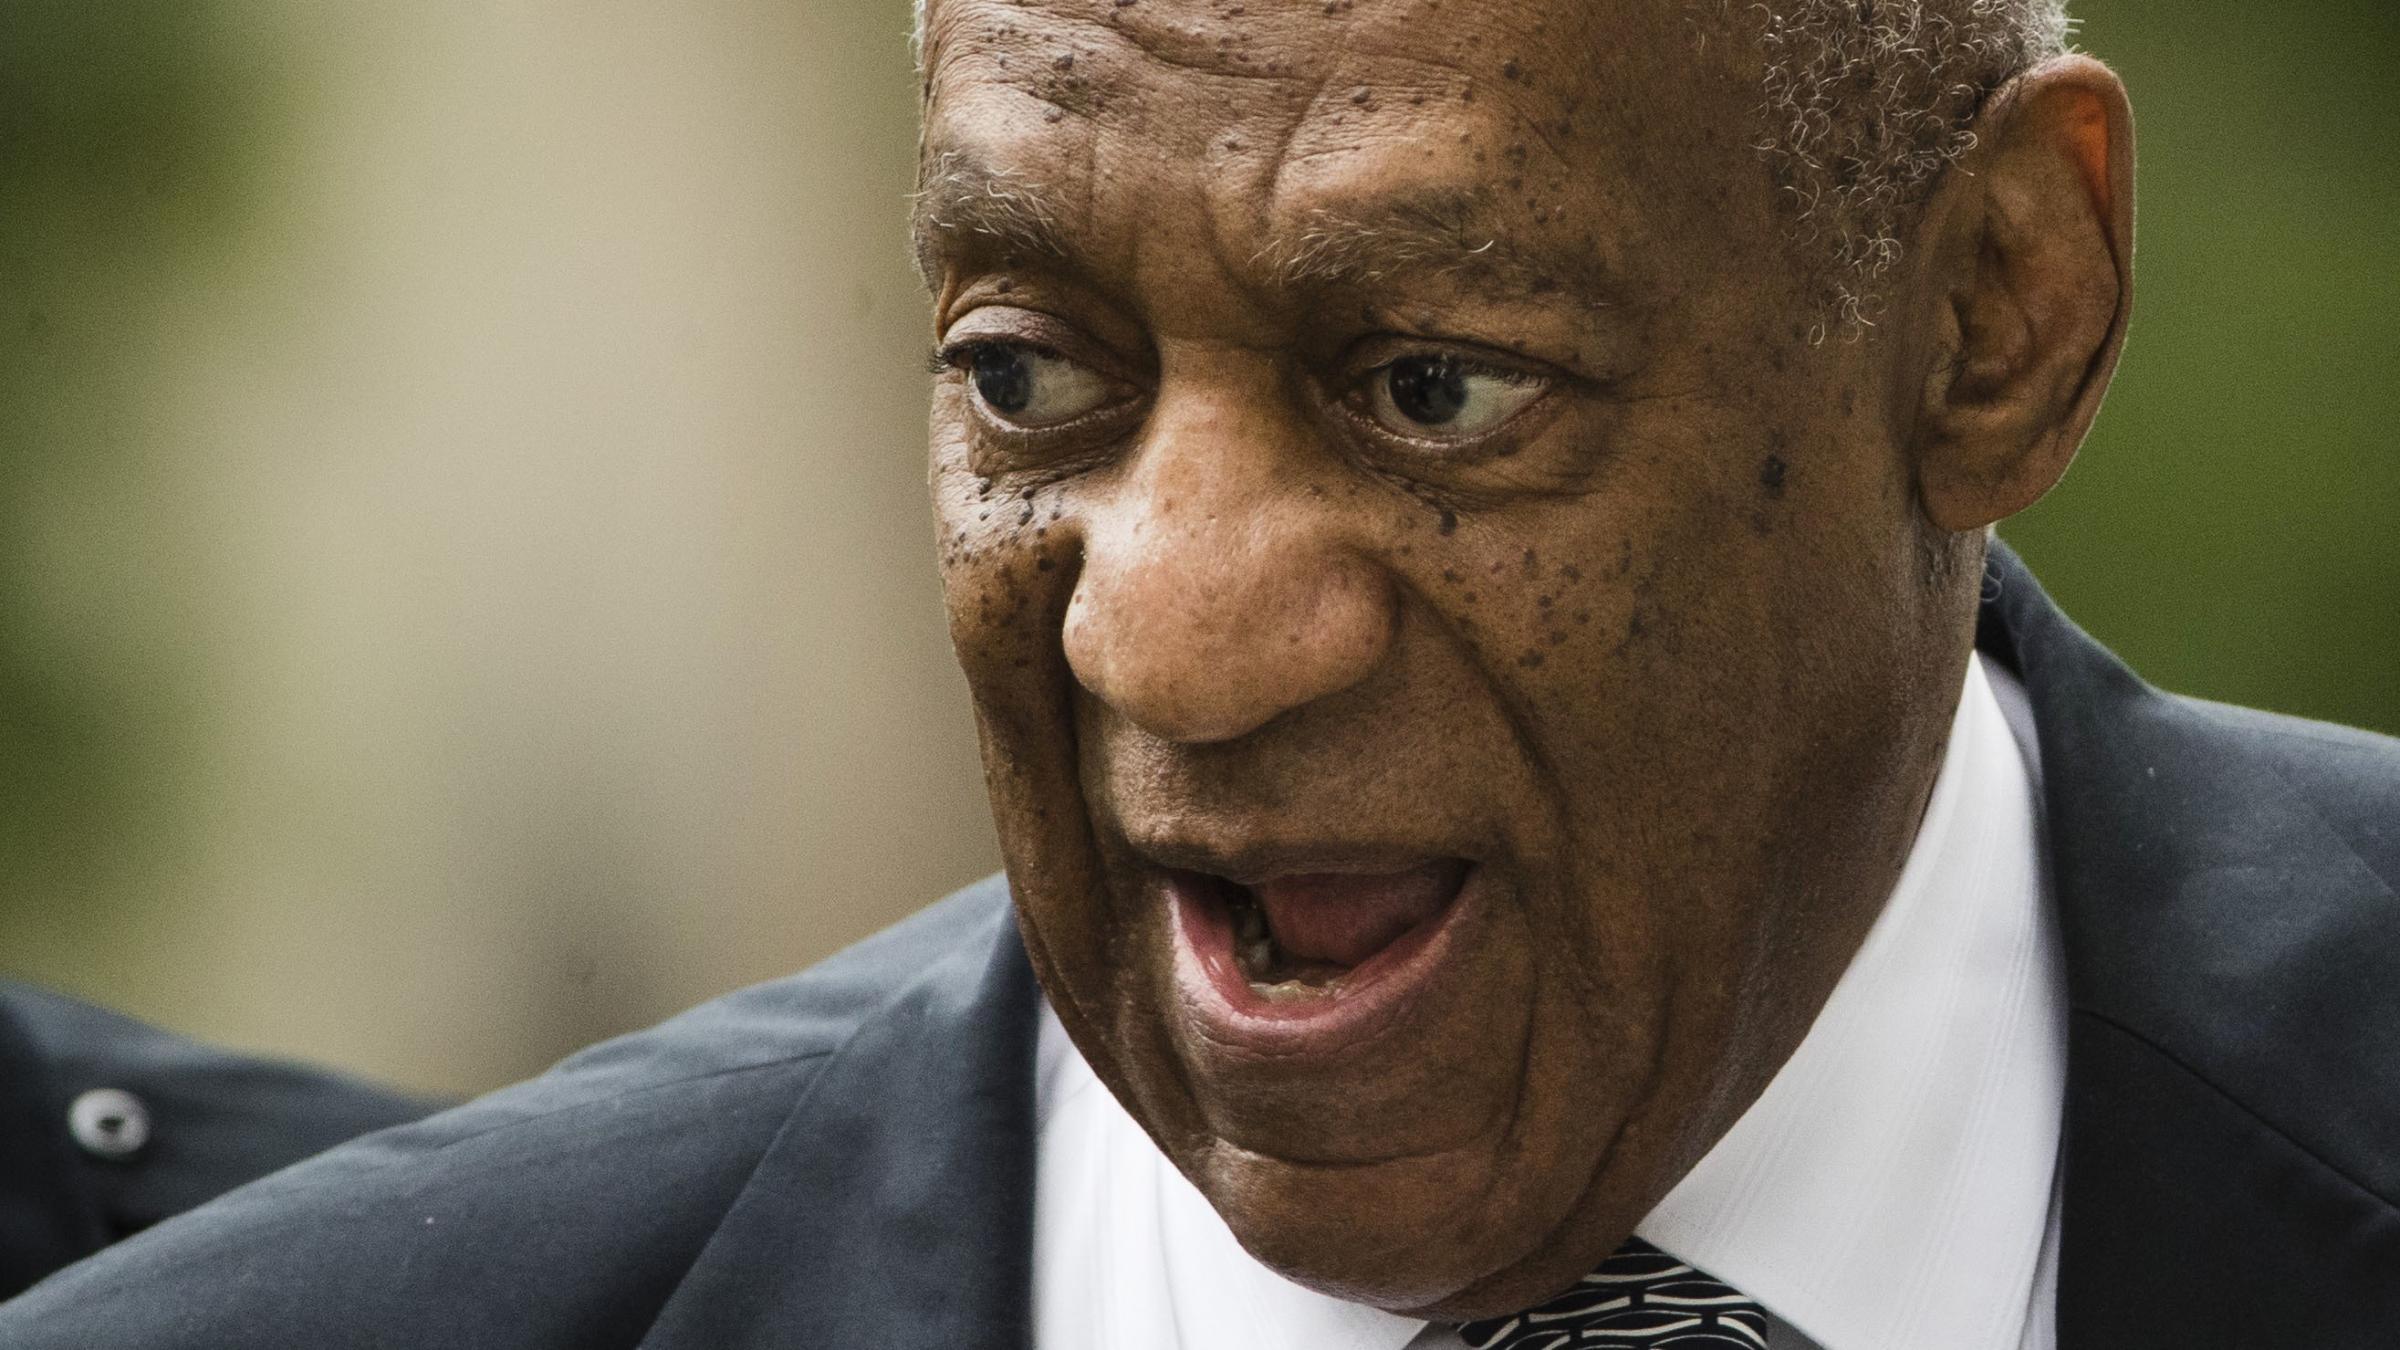 Cosby tweets thanks, defense demands mistrial over impasse